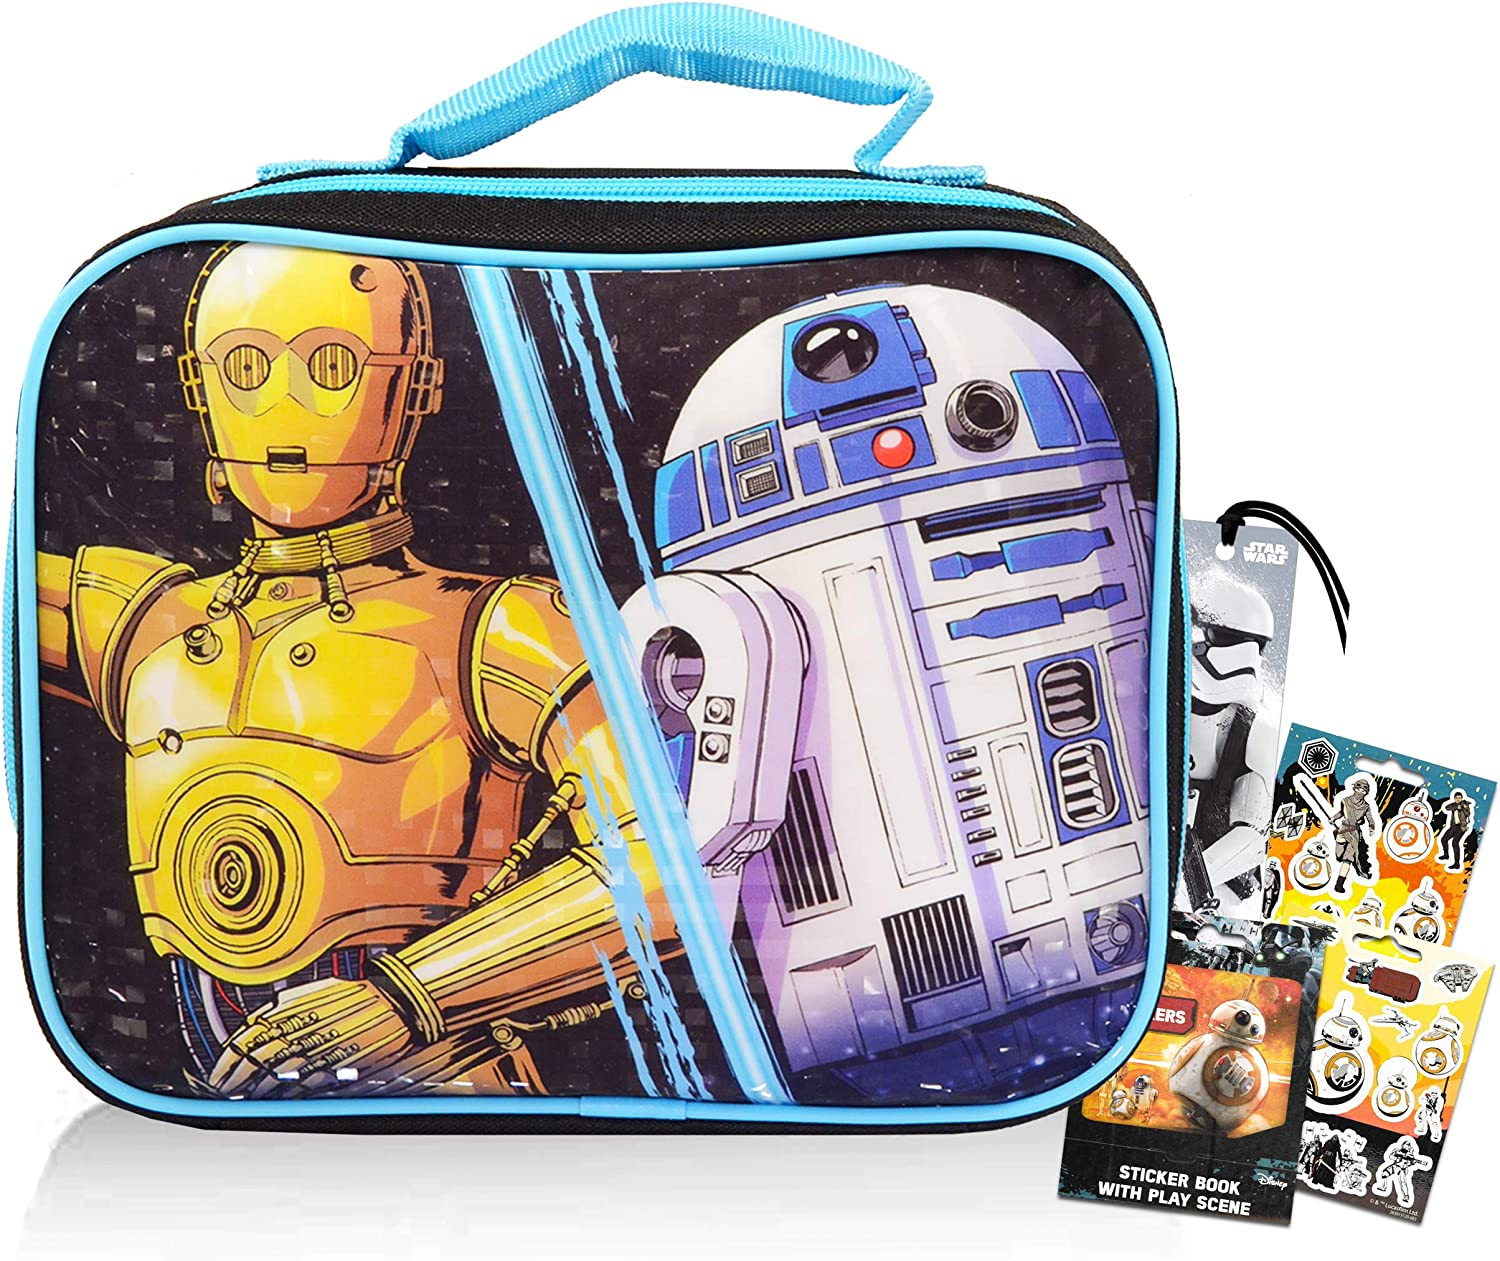 Star Wars Lunch Box Travel Bag for Boys Girls Kids ~ Star Wars School Lunch Bag Bundle with Star Wars Stickers and Bookmark (Star Wars School Supplies for Boys Girls)